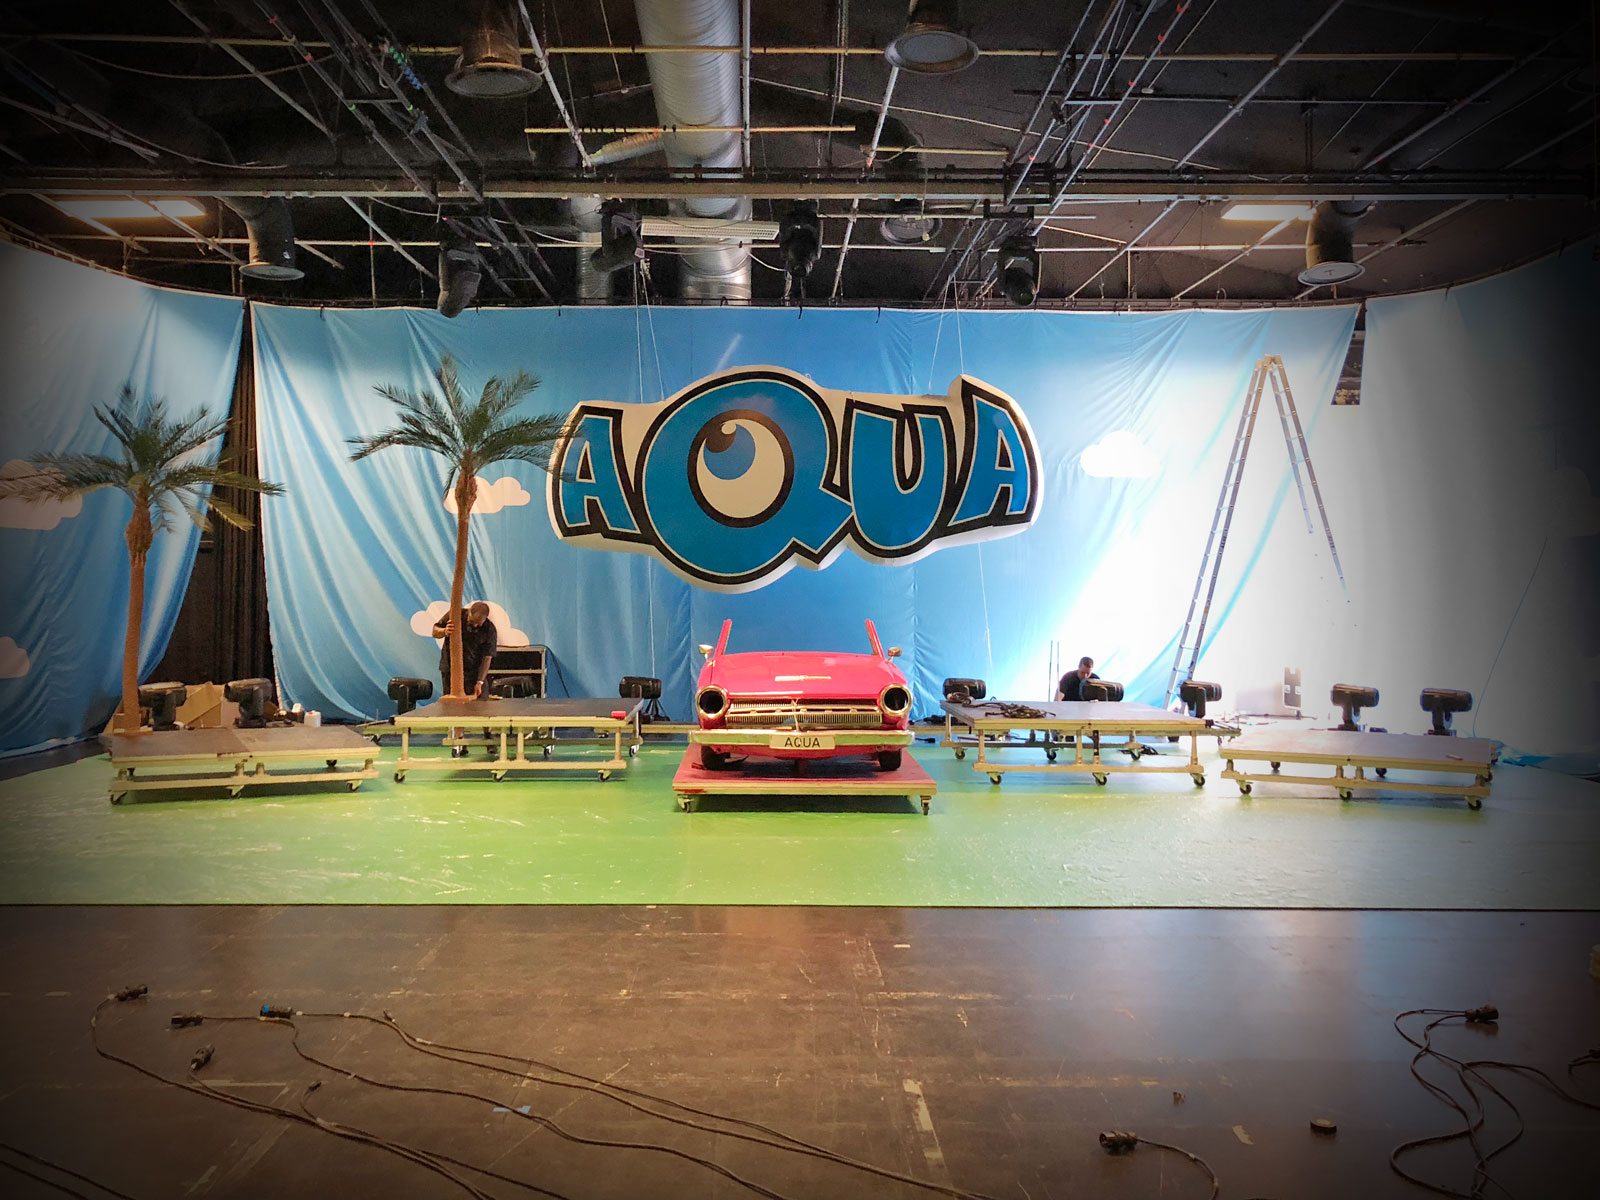 AQUA's logo used as a giant inflatable stage prop